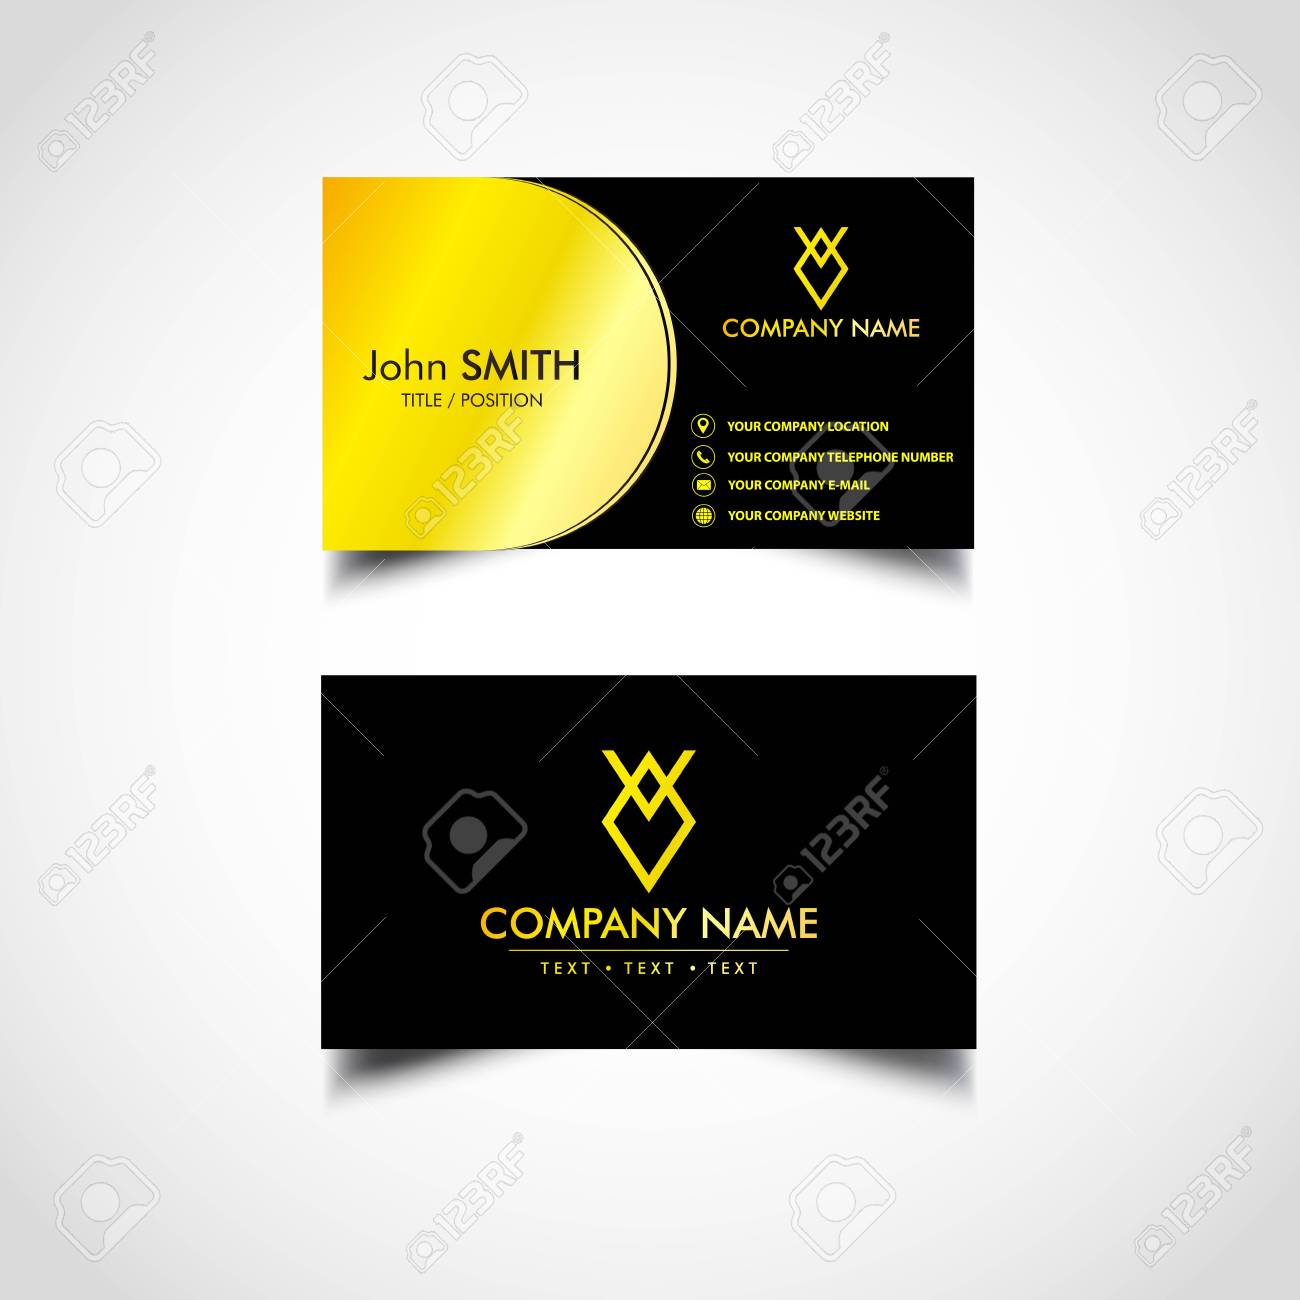 Golden Business Card Template Vector Us Size Eps File Royalty